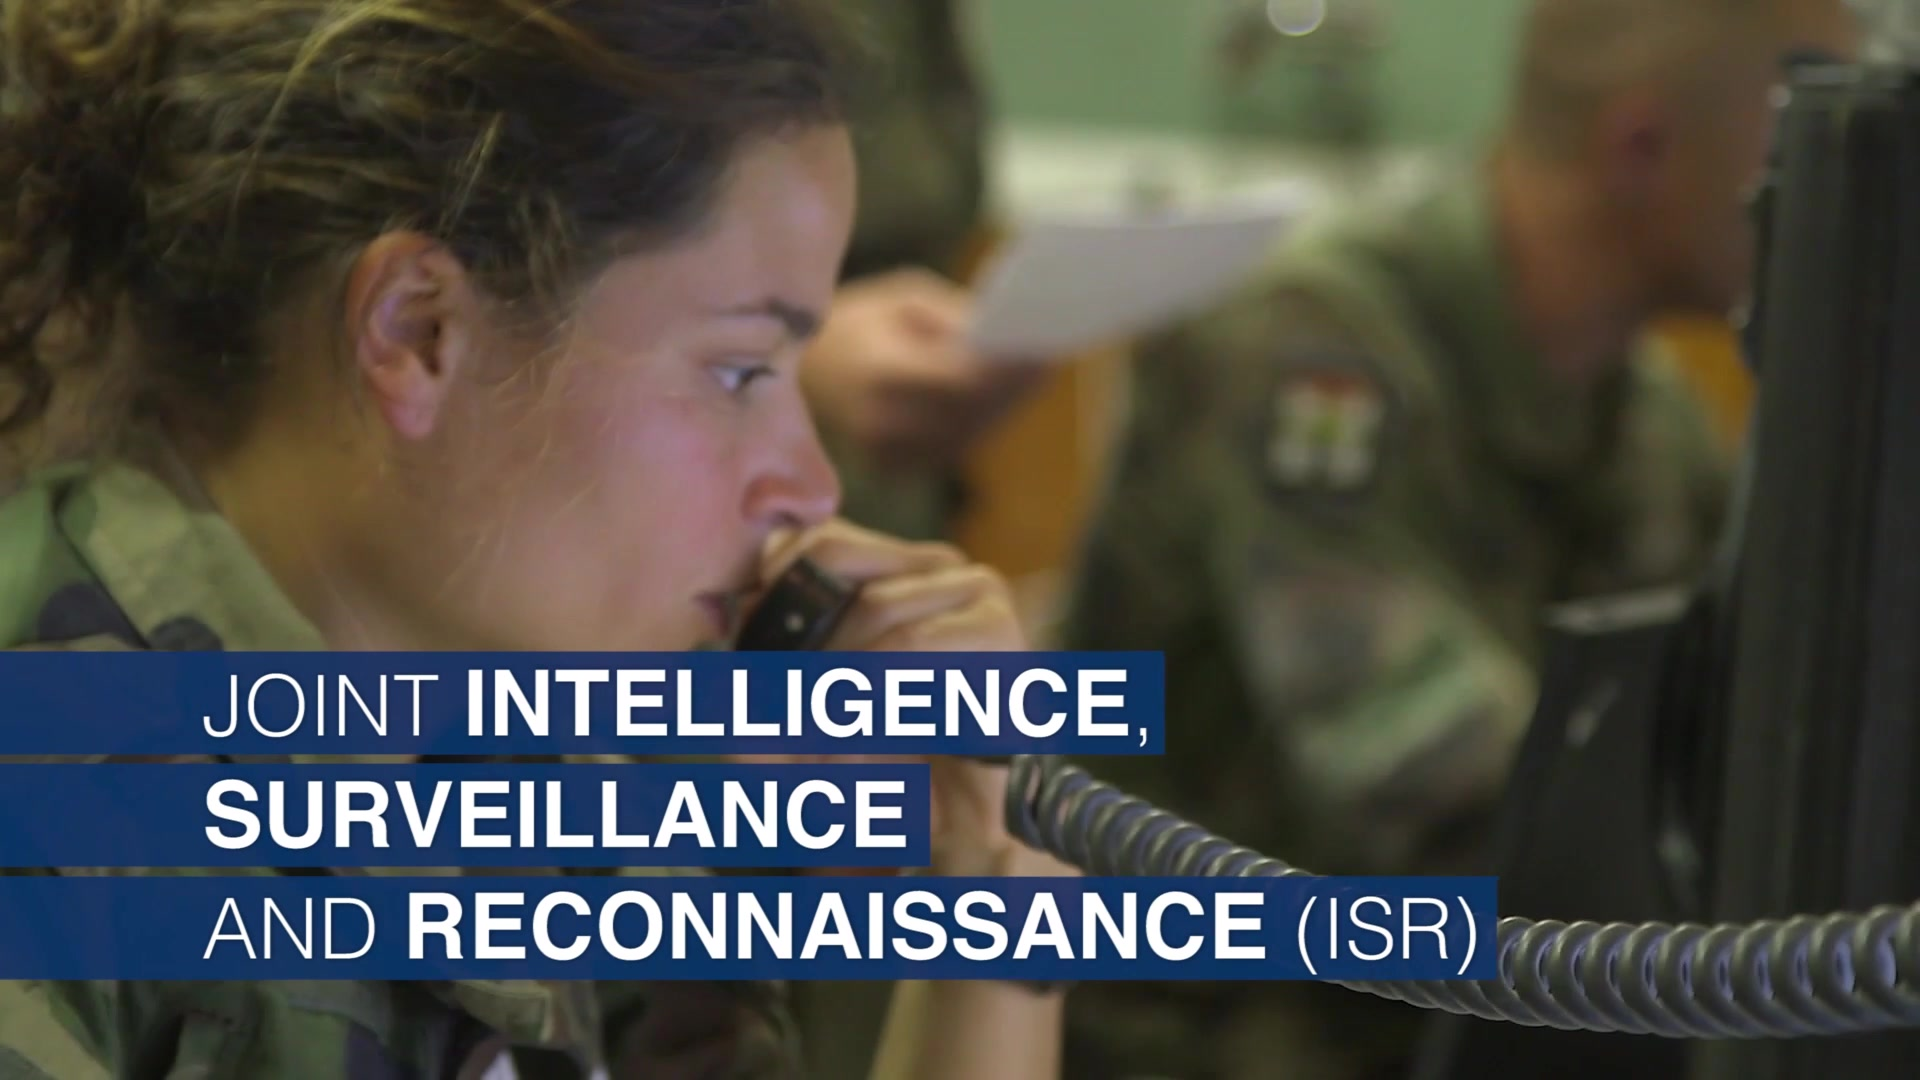 Unified Vision trials are the premier NATO event at which Allies trial various Joint Intelligence, Reconnaissance and Surveillance (ISR) activities, be they technical or procedural, utilising national ISR capabilities in a live environment. The trial runs from 4 -29 June.